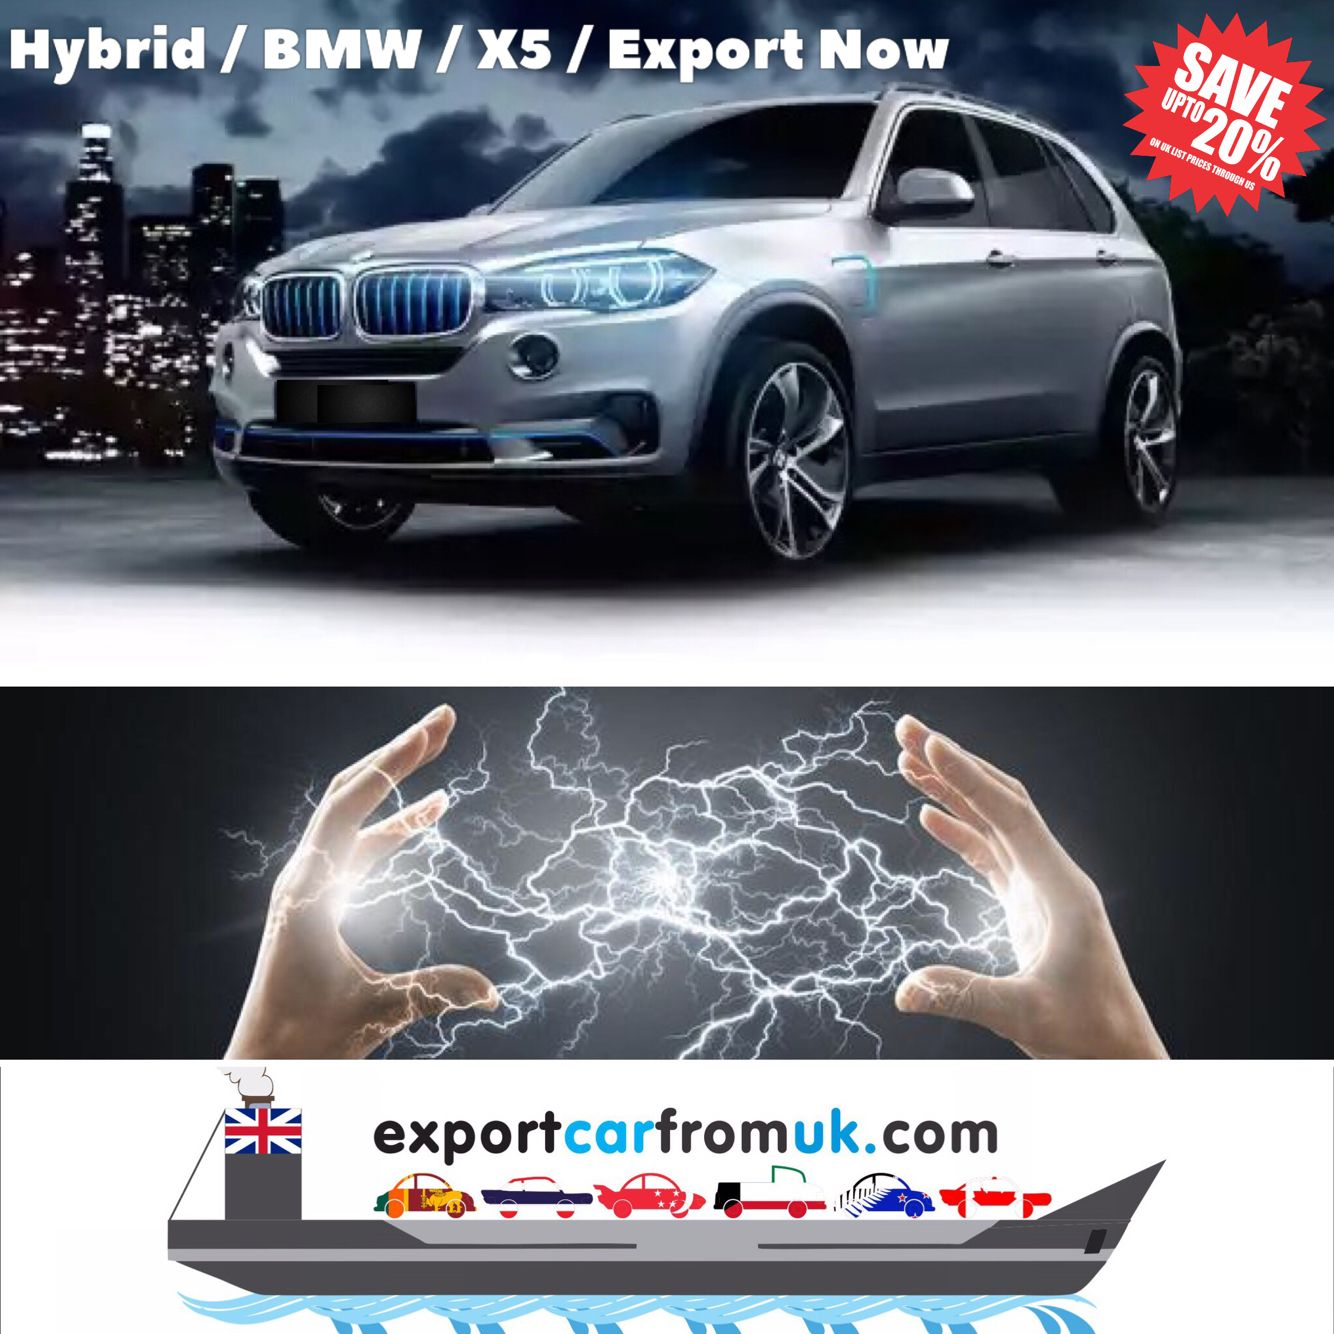 The new 2017 bmw x5 Available for export now. Contact